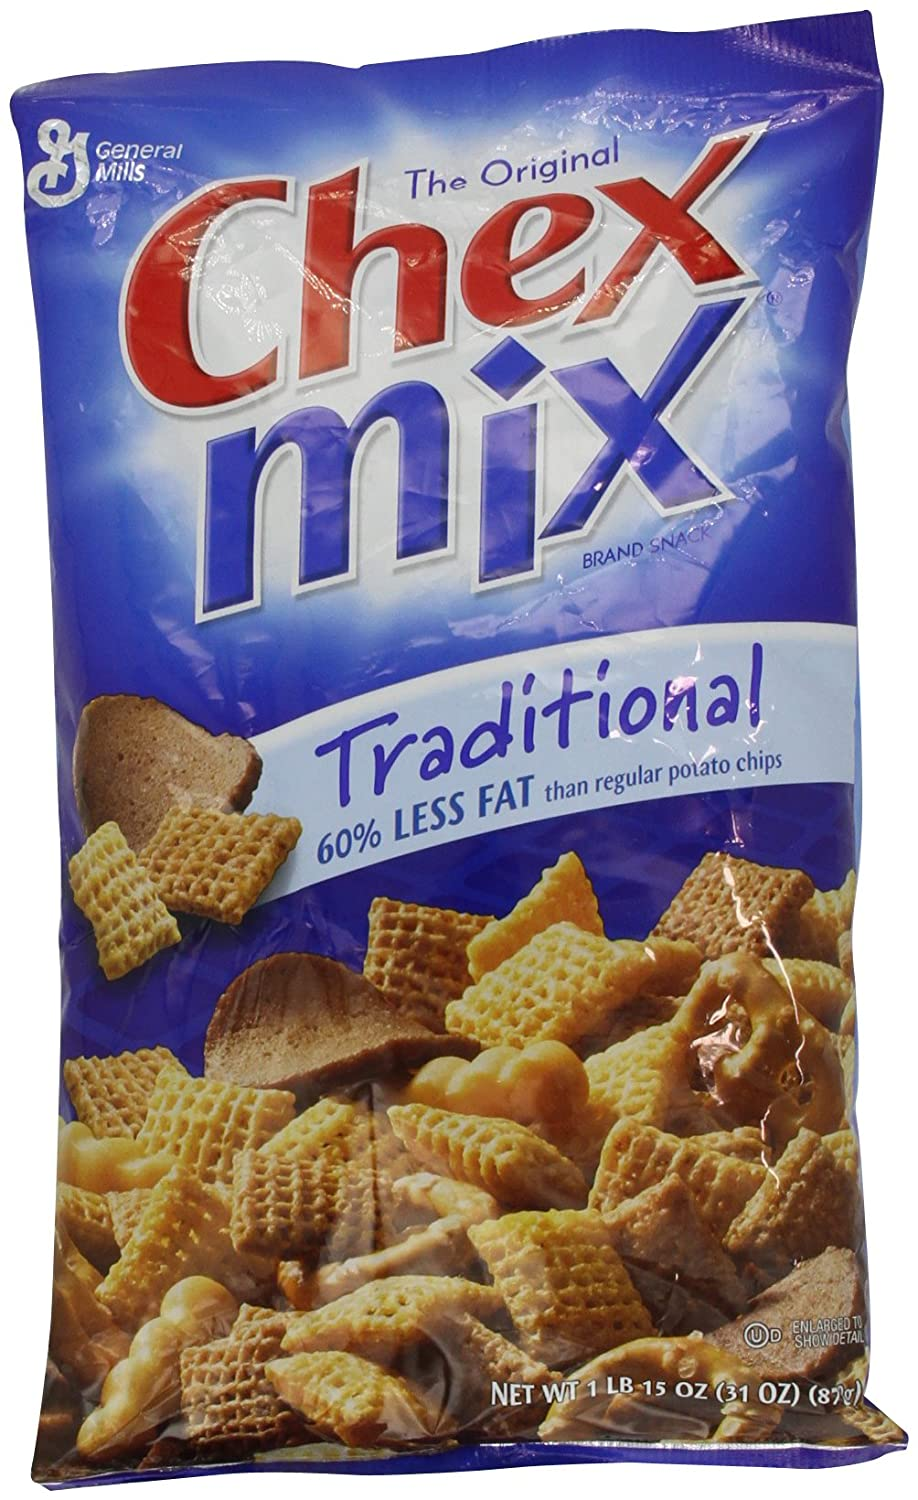 Not yummy chex mix!